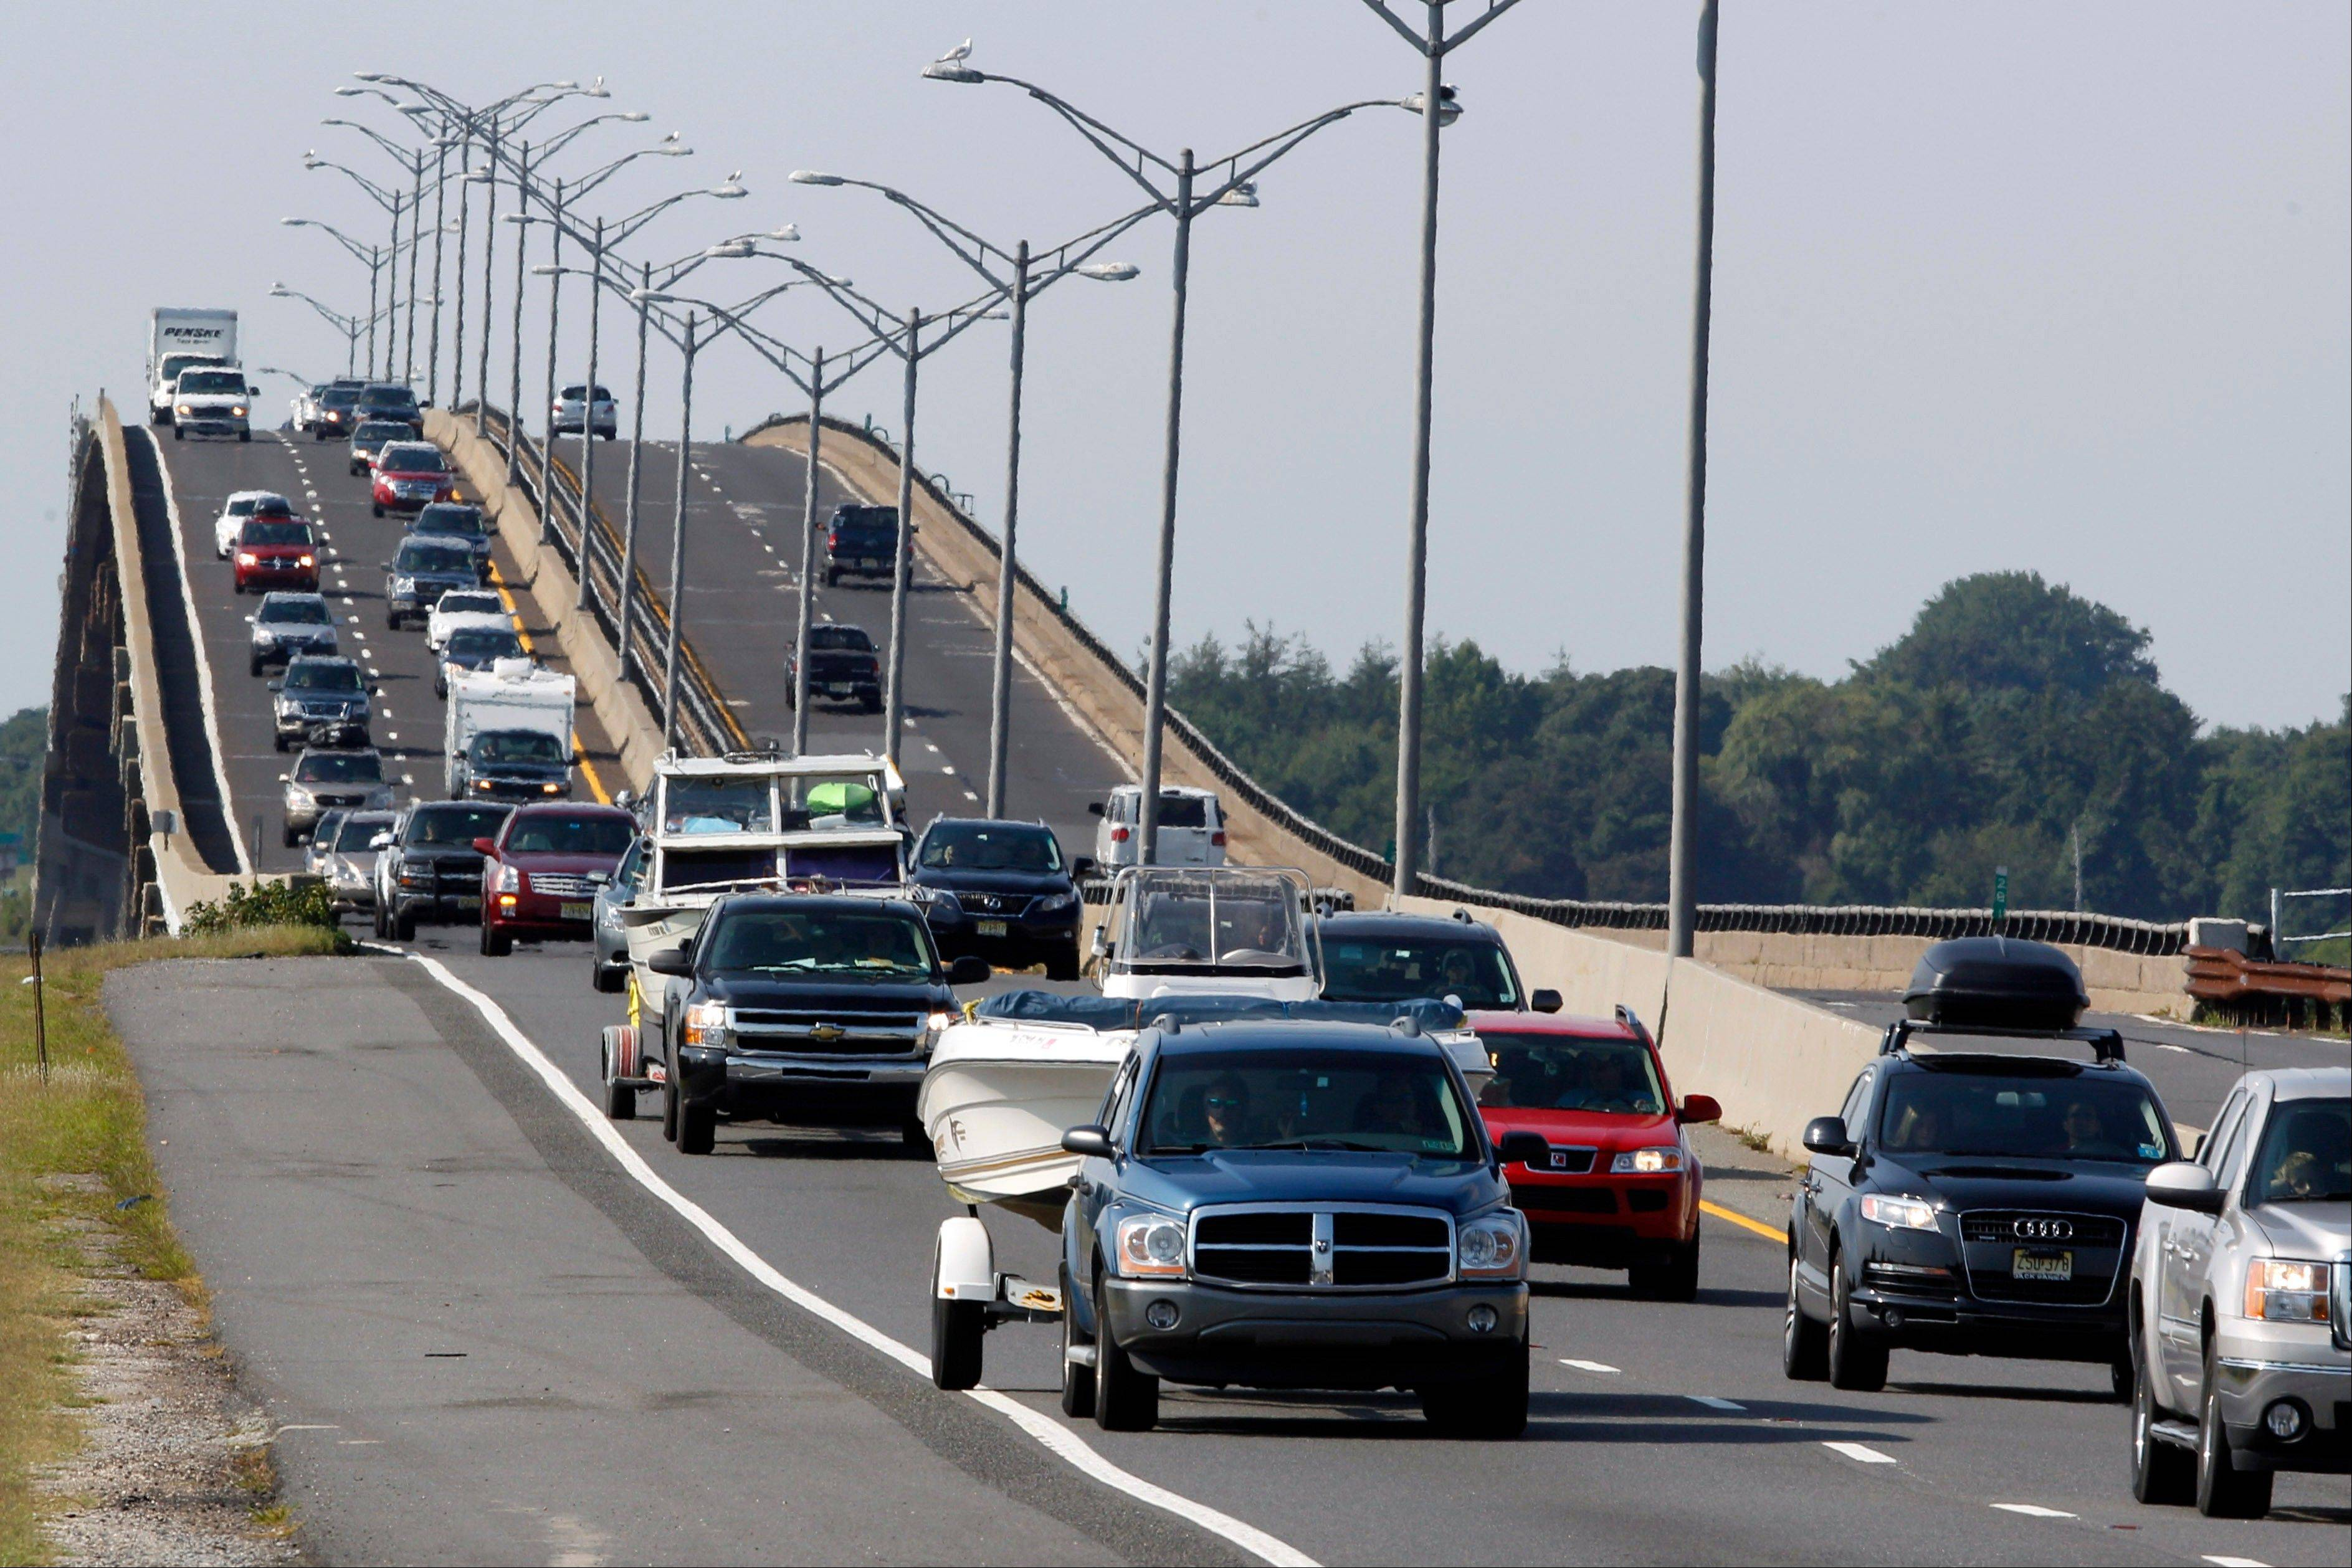 Sport utility vehicles pulling pleasure boats drive in lines of traffic headed north on the Garden State Parkway across the Great Egg Harbor Bay Inlet Bridge, Friday near Ocean City, N.J., as much of the Jersey shore evacuates inland ahead of Hurricane Irene.